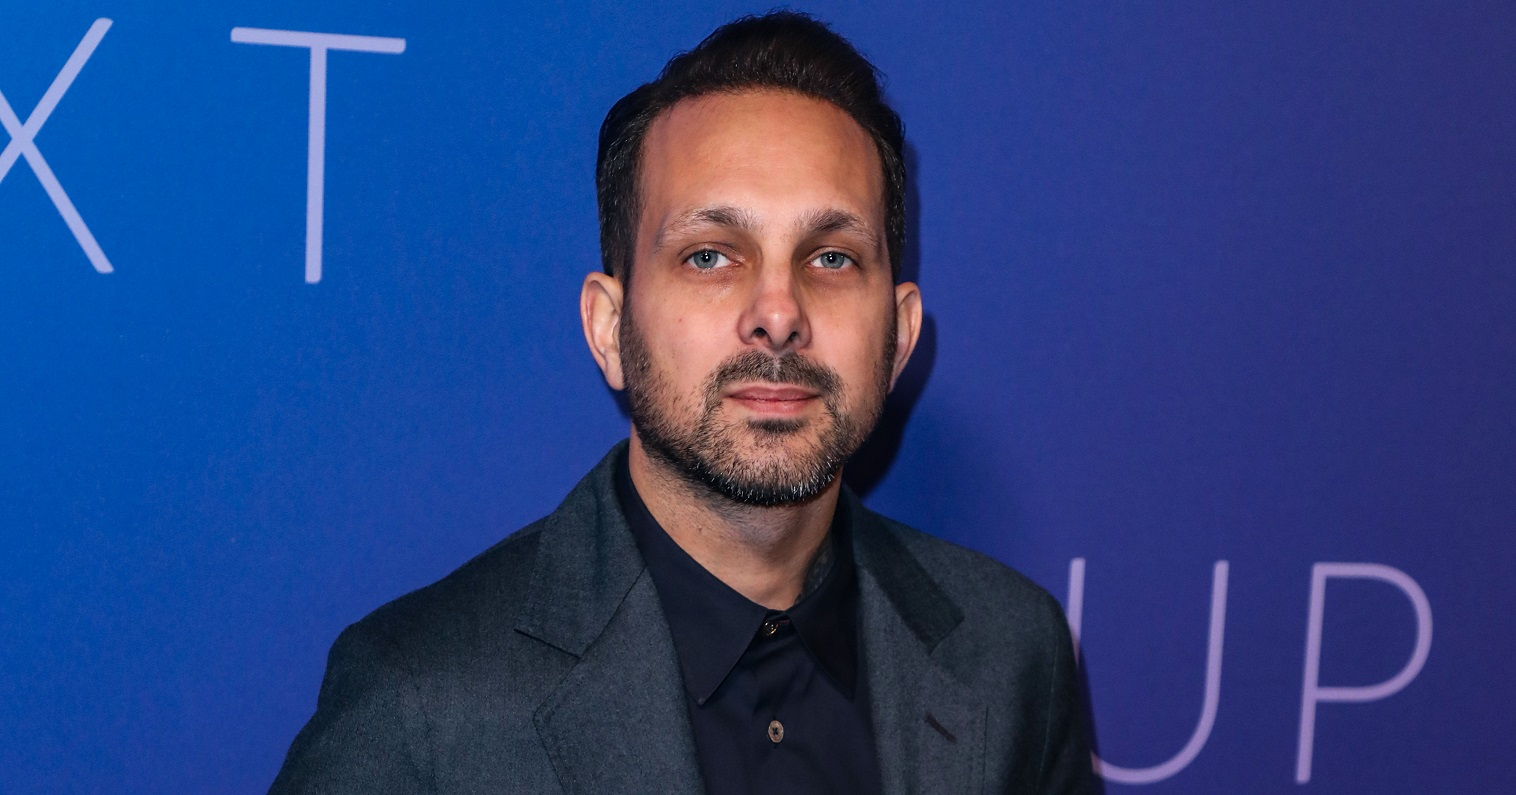 Magician Dynamo in hospital due to Crohn's disease 'flare up' after recovering from coronavirus